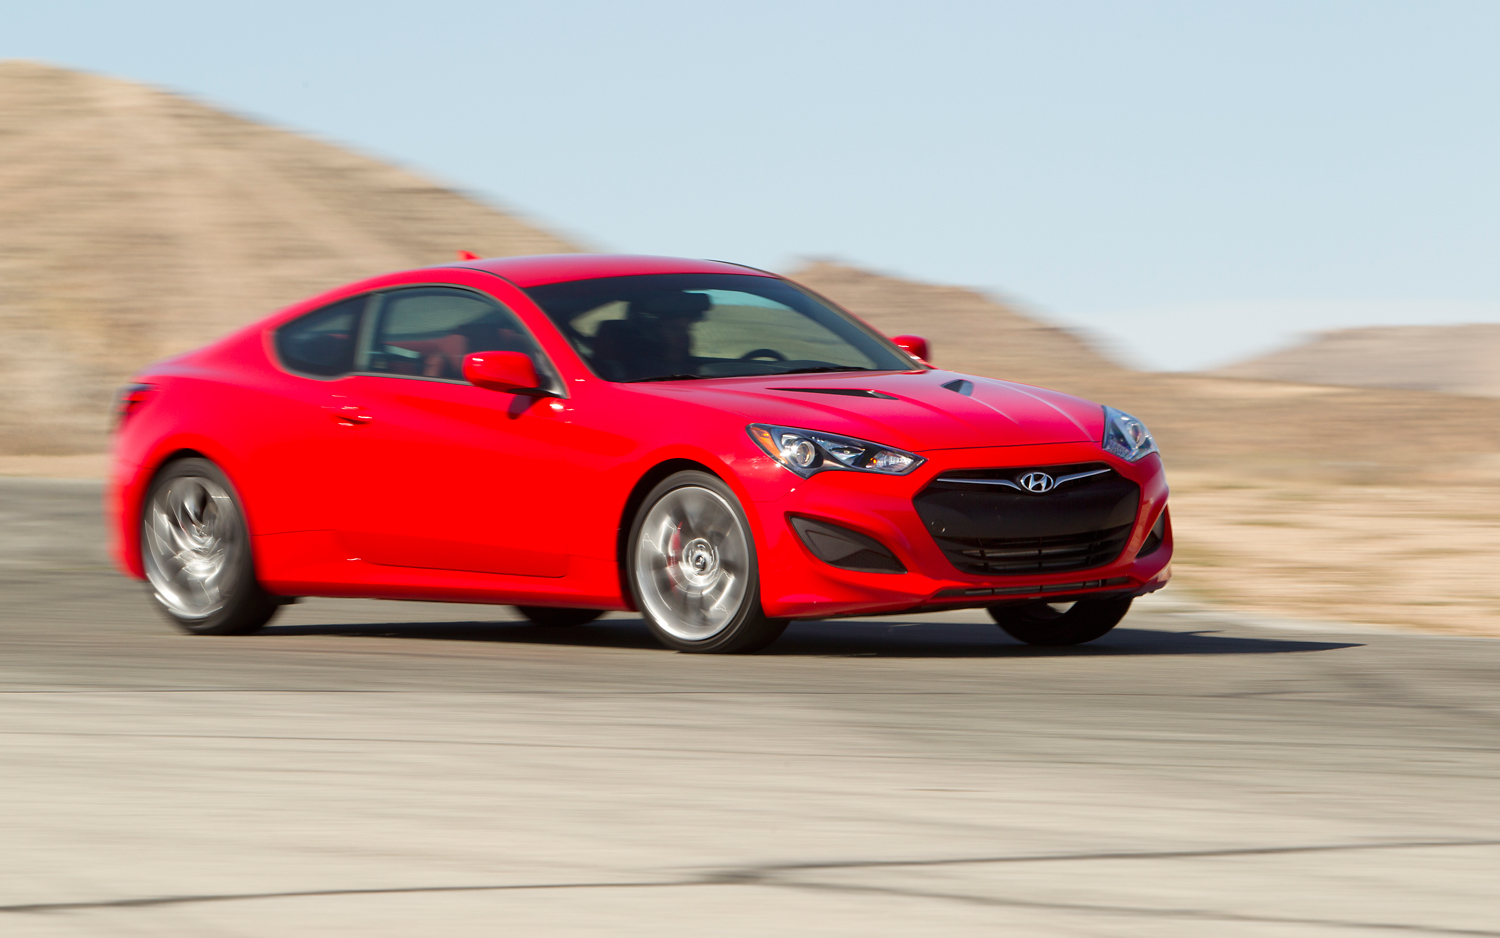 2013 Hyundai Genesis Coupe 2.0T R Spec First Test